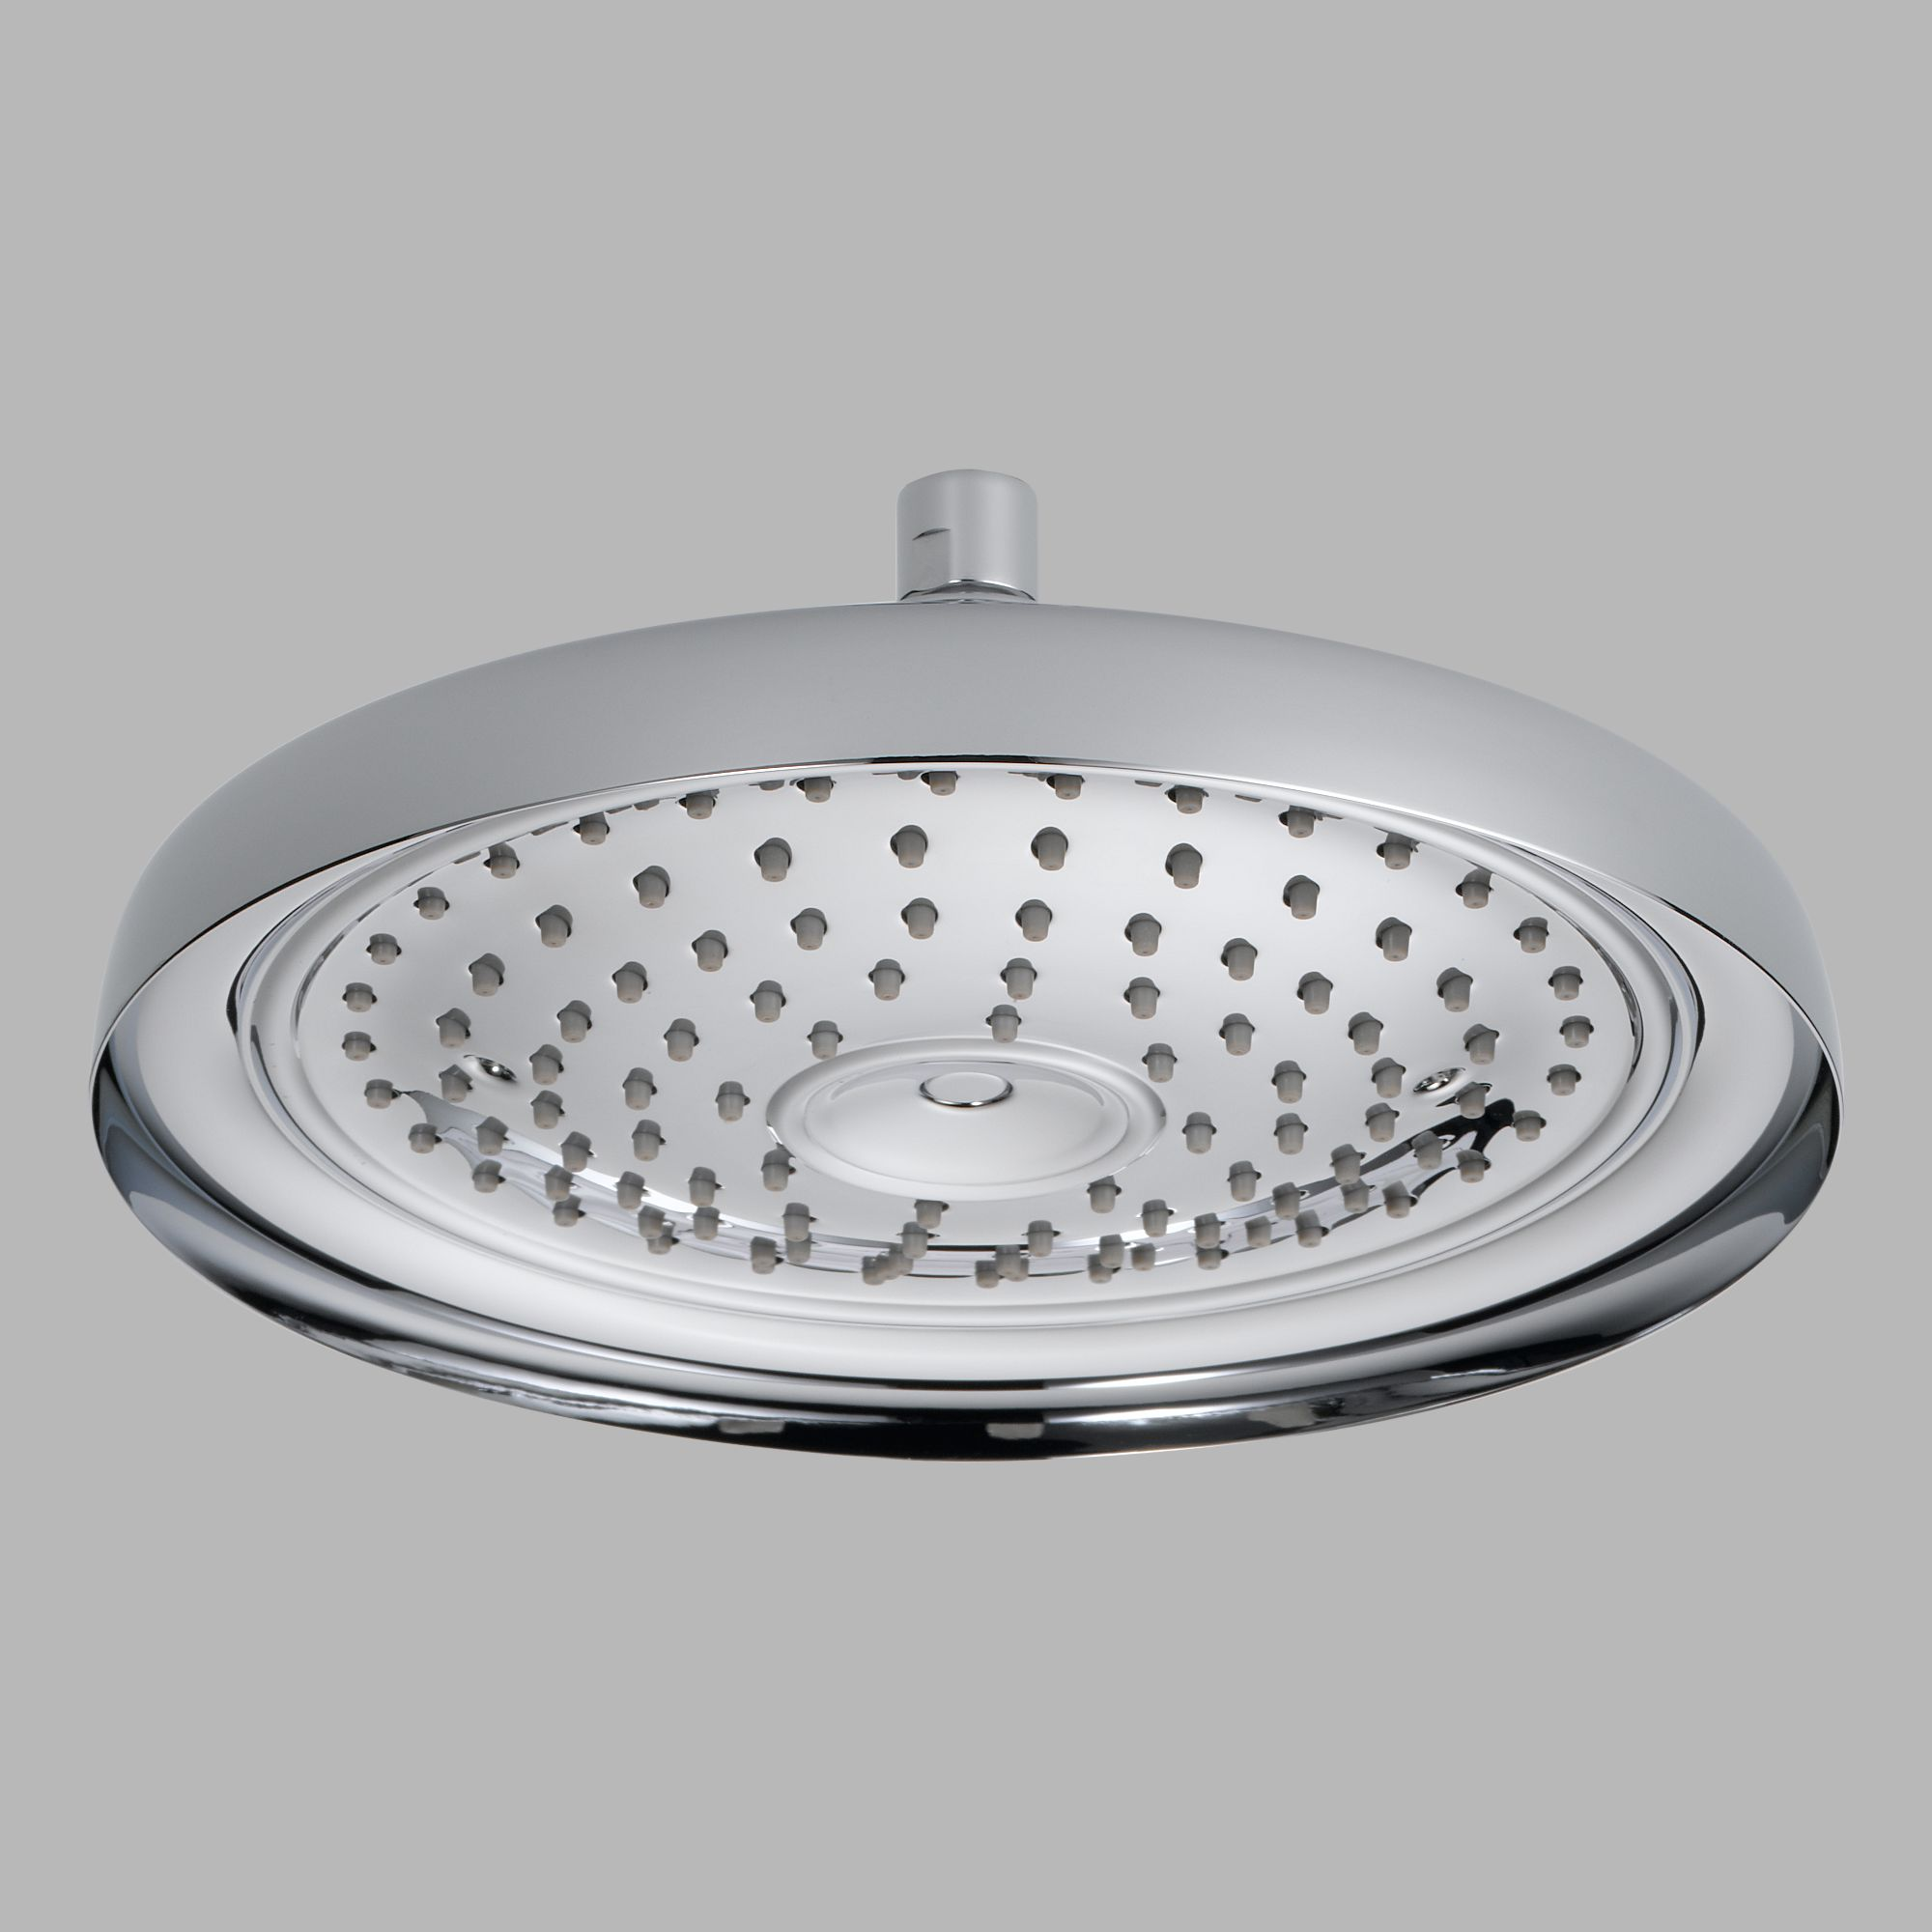 83310 Brizo Traditional Ceiling Mount Raincan Shower Head